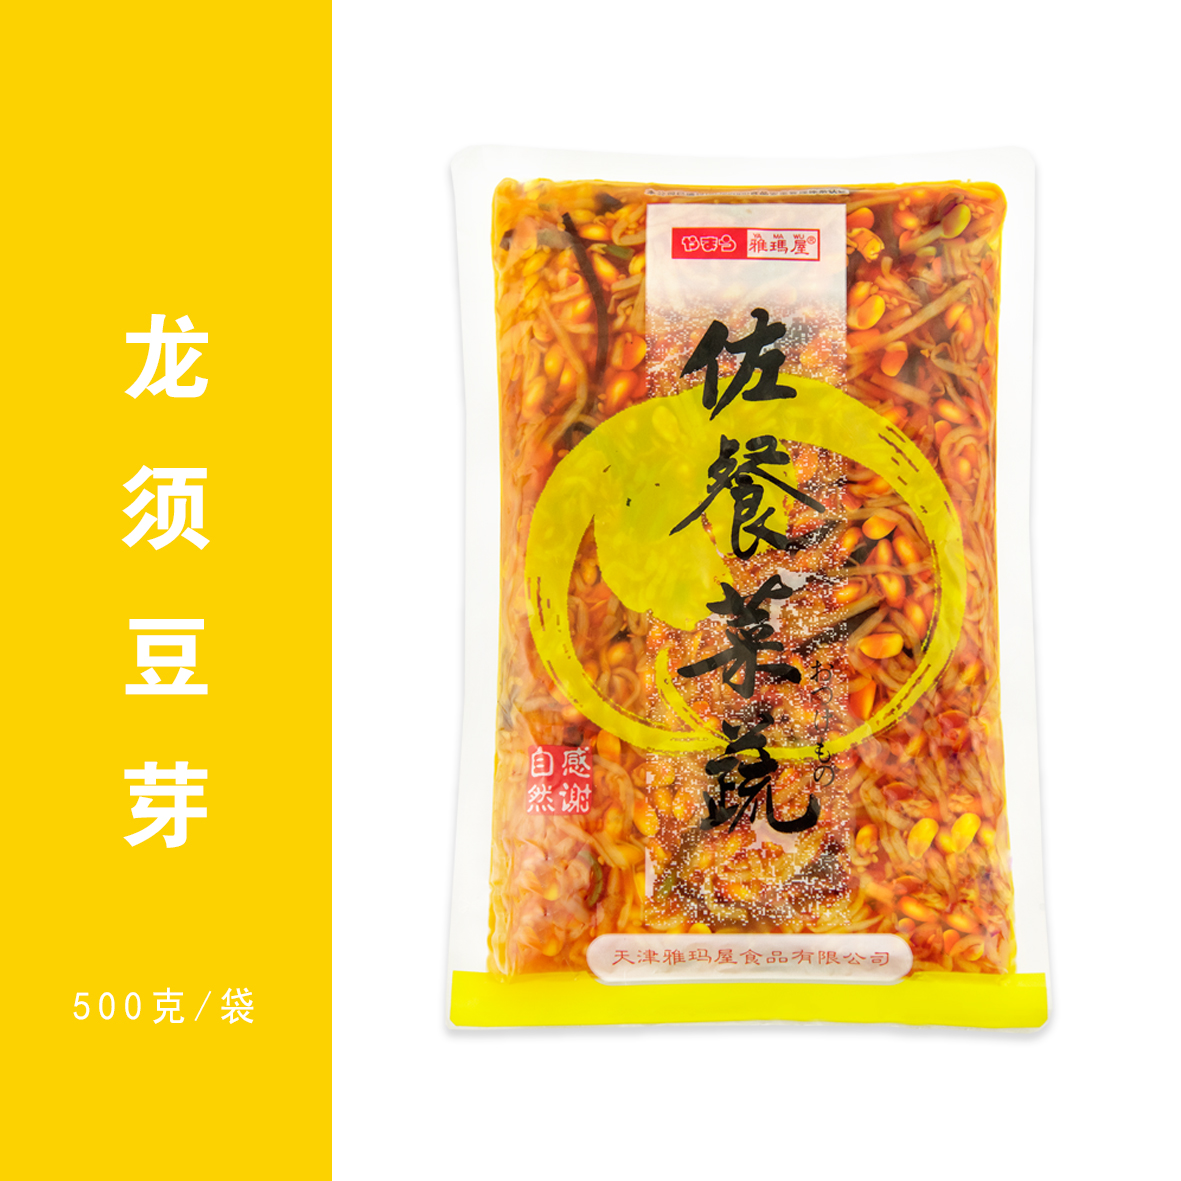 Man 58 package mail yamawu Longxu bean sprouts pickled vegetables assorted dishes Korean bibimbap food 500g